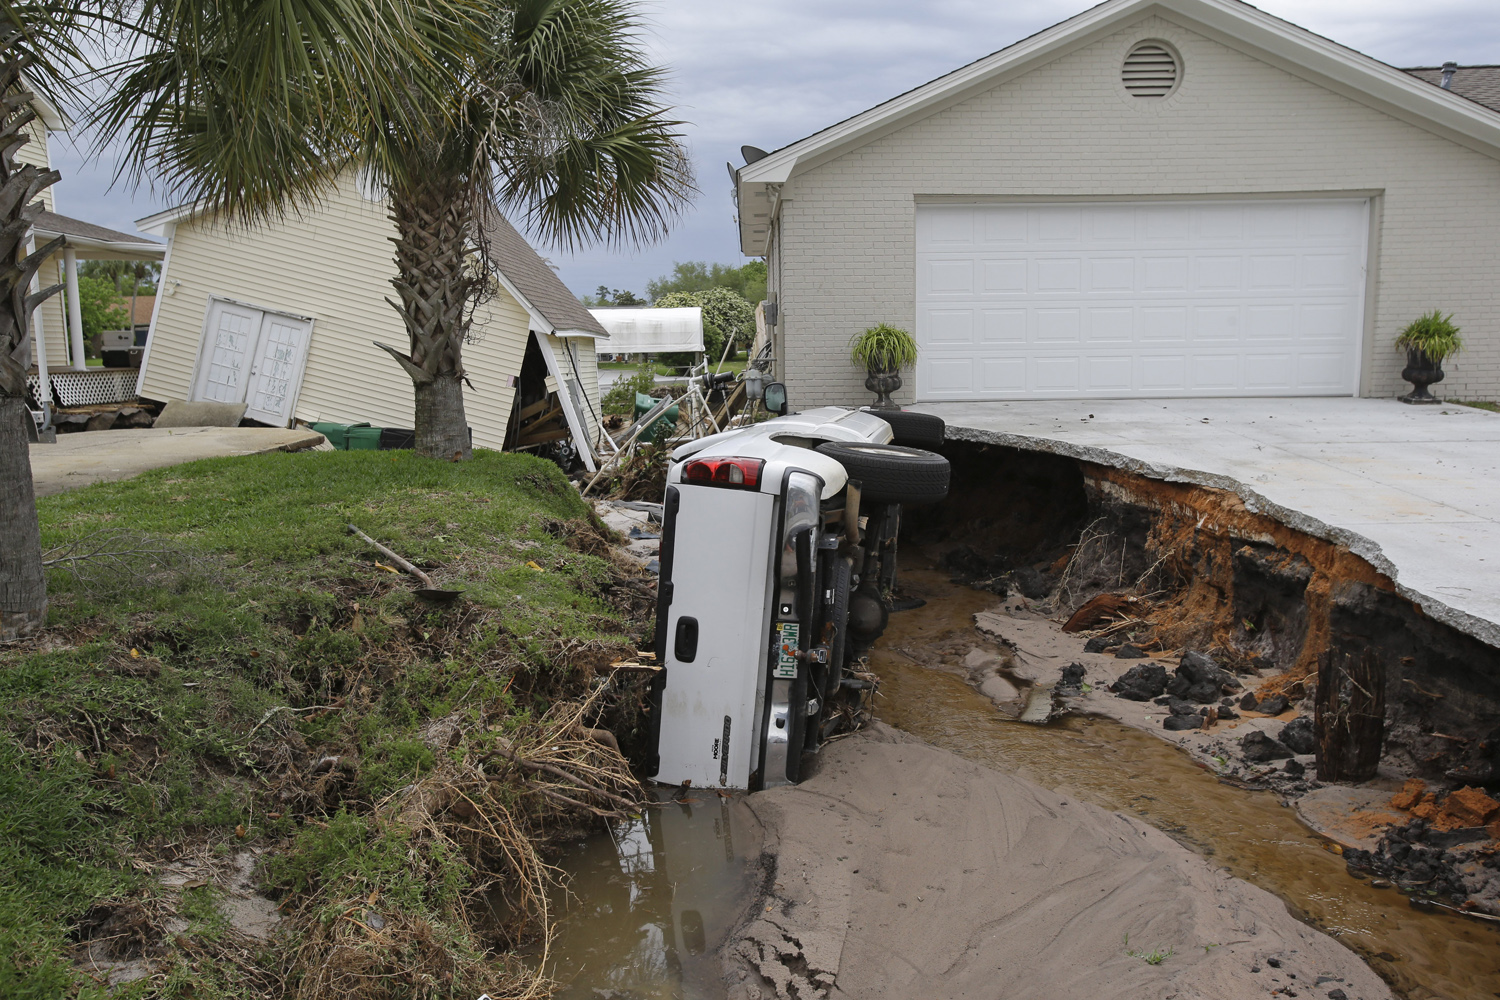 May 1, 2014, A pickup truck remains overturned after flooding collapsed the driveway at this home in the Villa Venyce subdivision,  in Gulf Breeze, Fla.